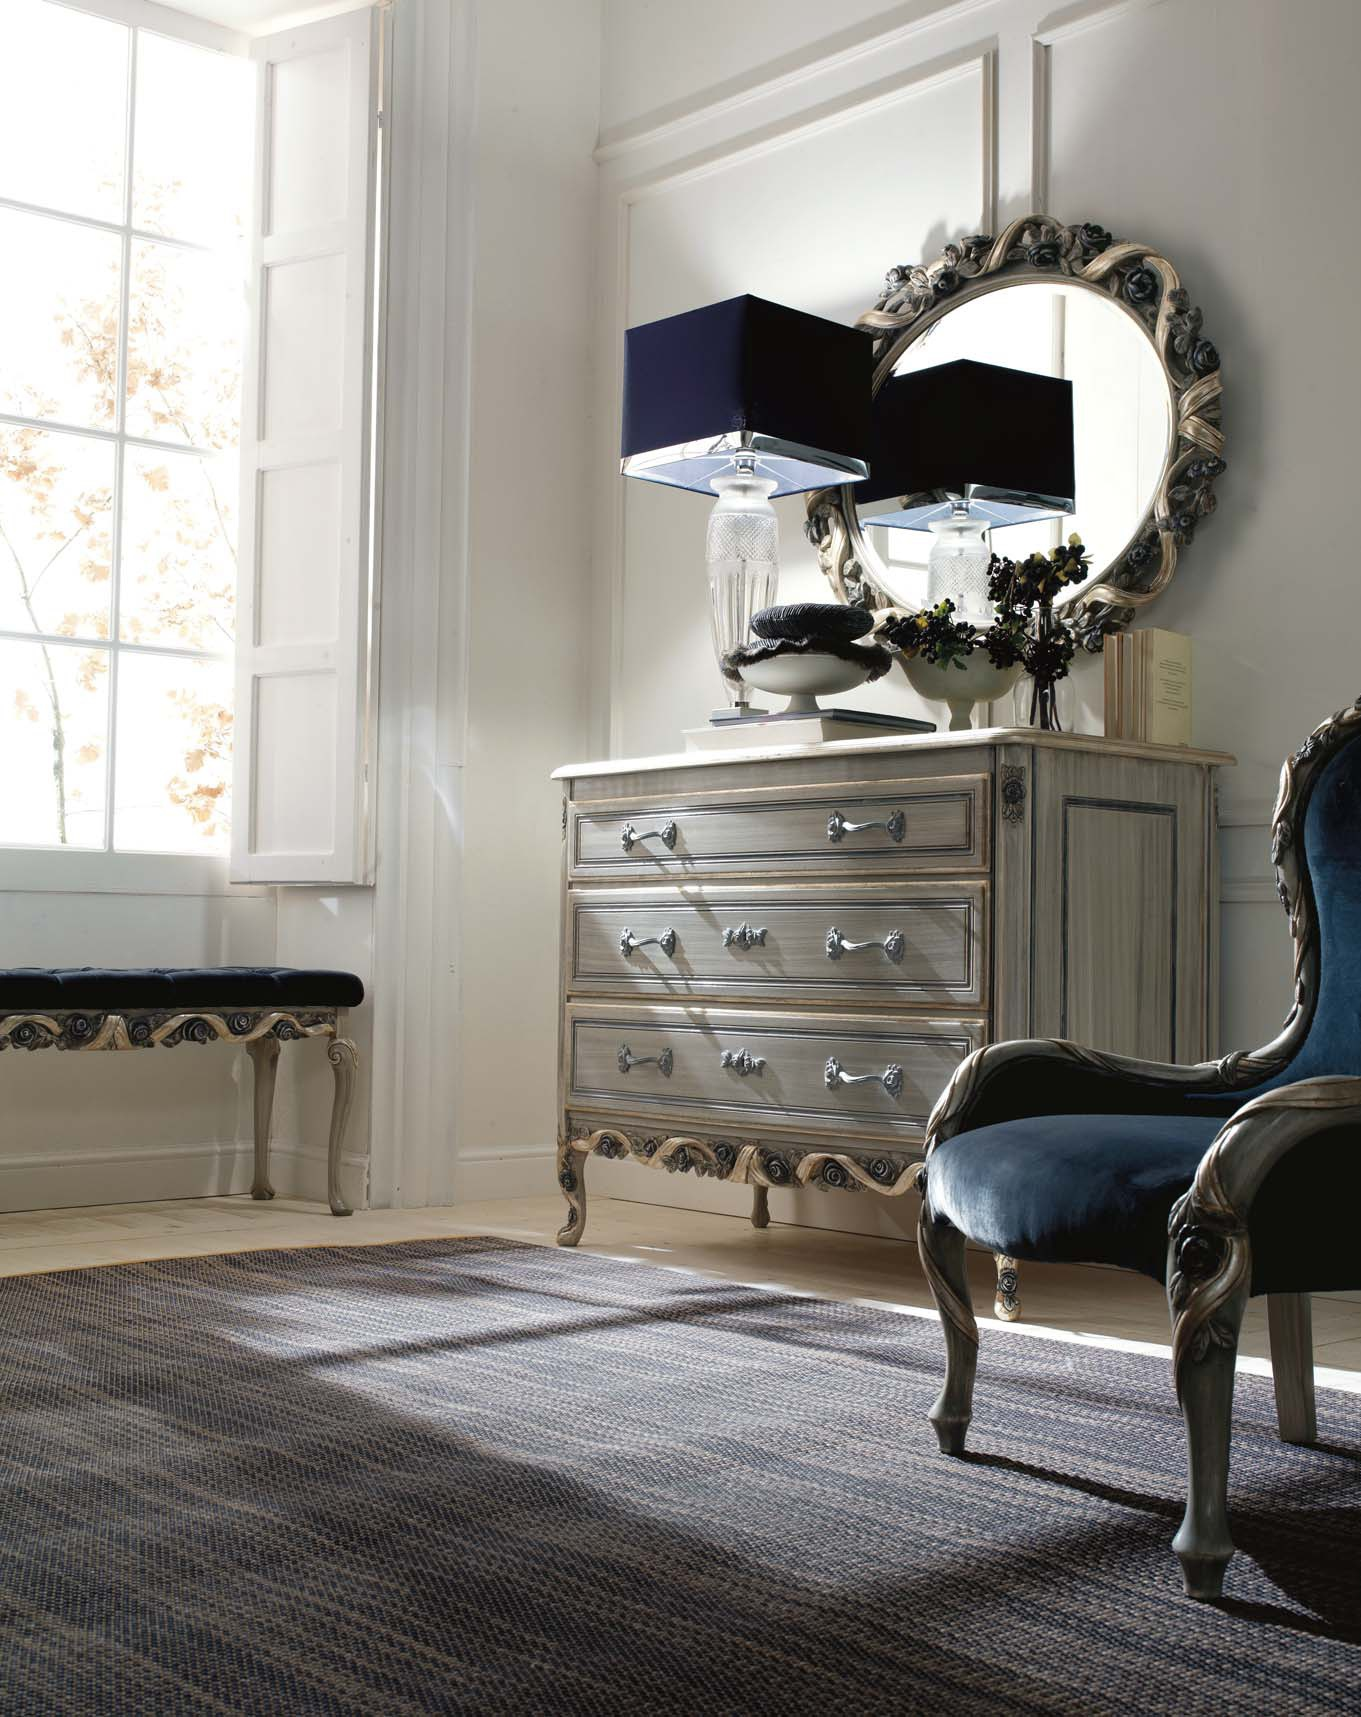 Bedside Bench With Carved Elements Ambiente Notte Savio